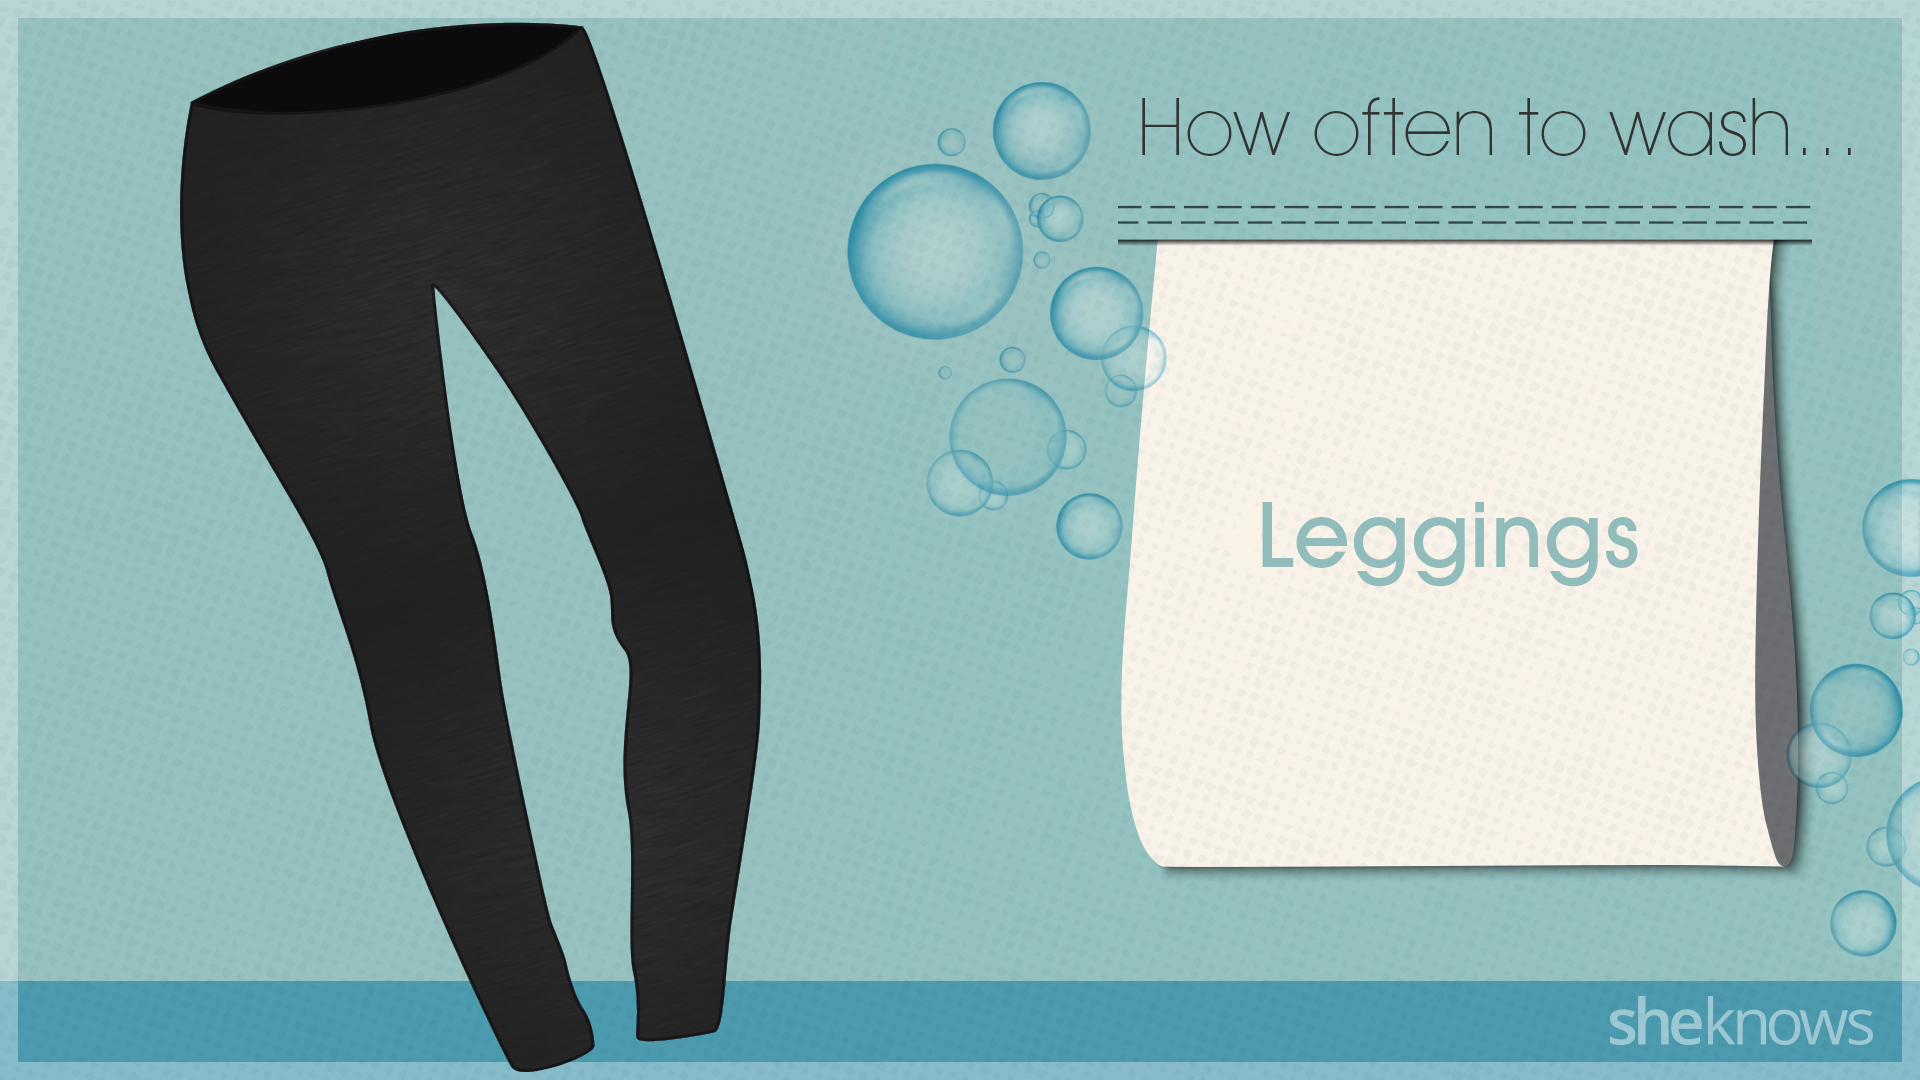 You're probably washing your clothes too much: Leggings